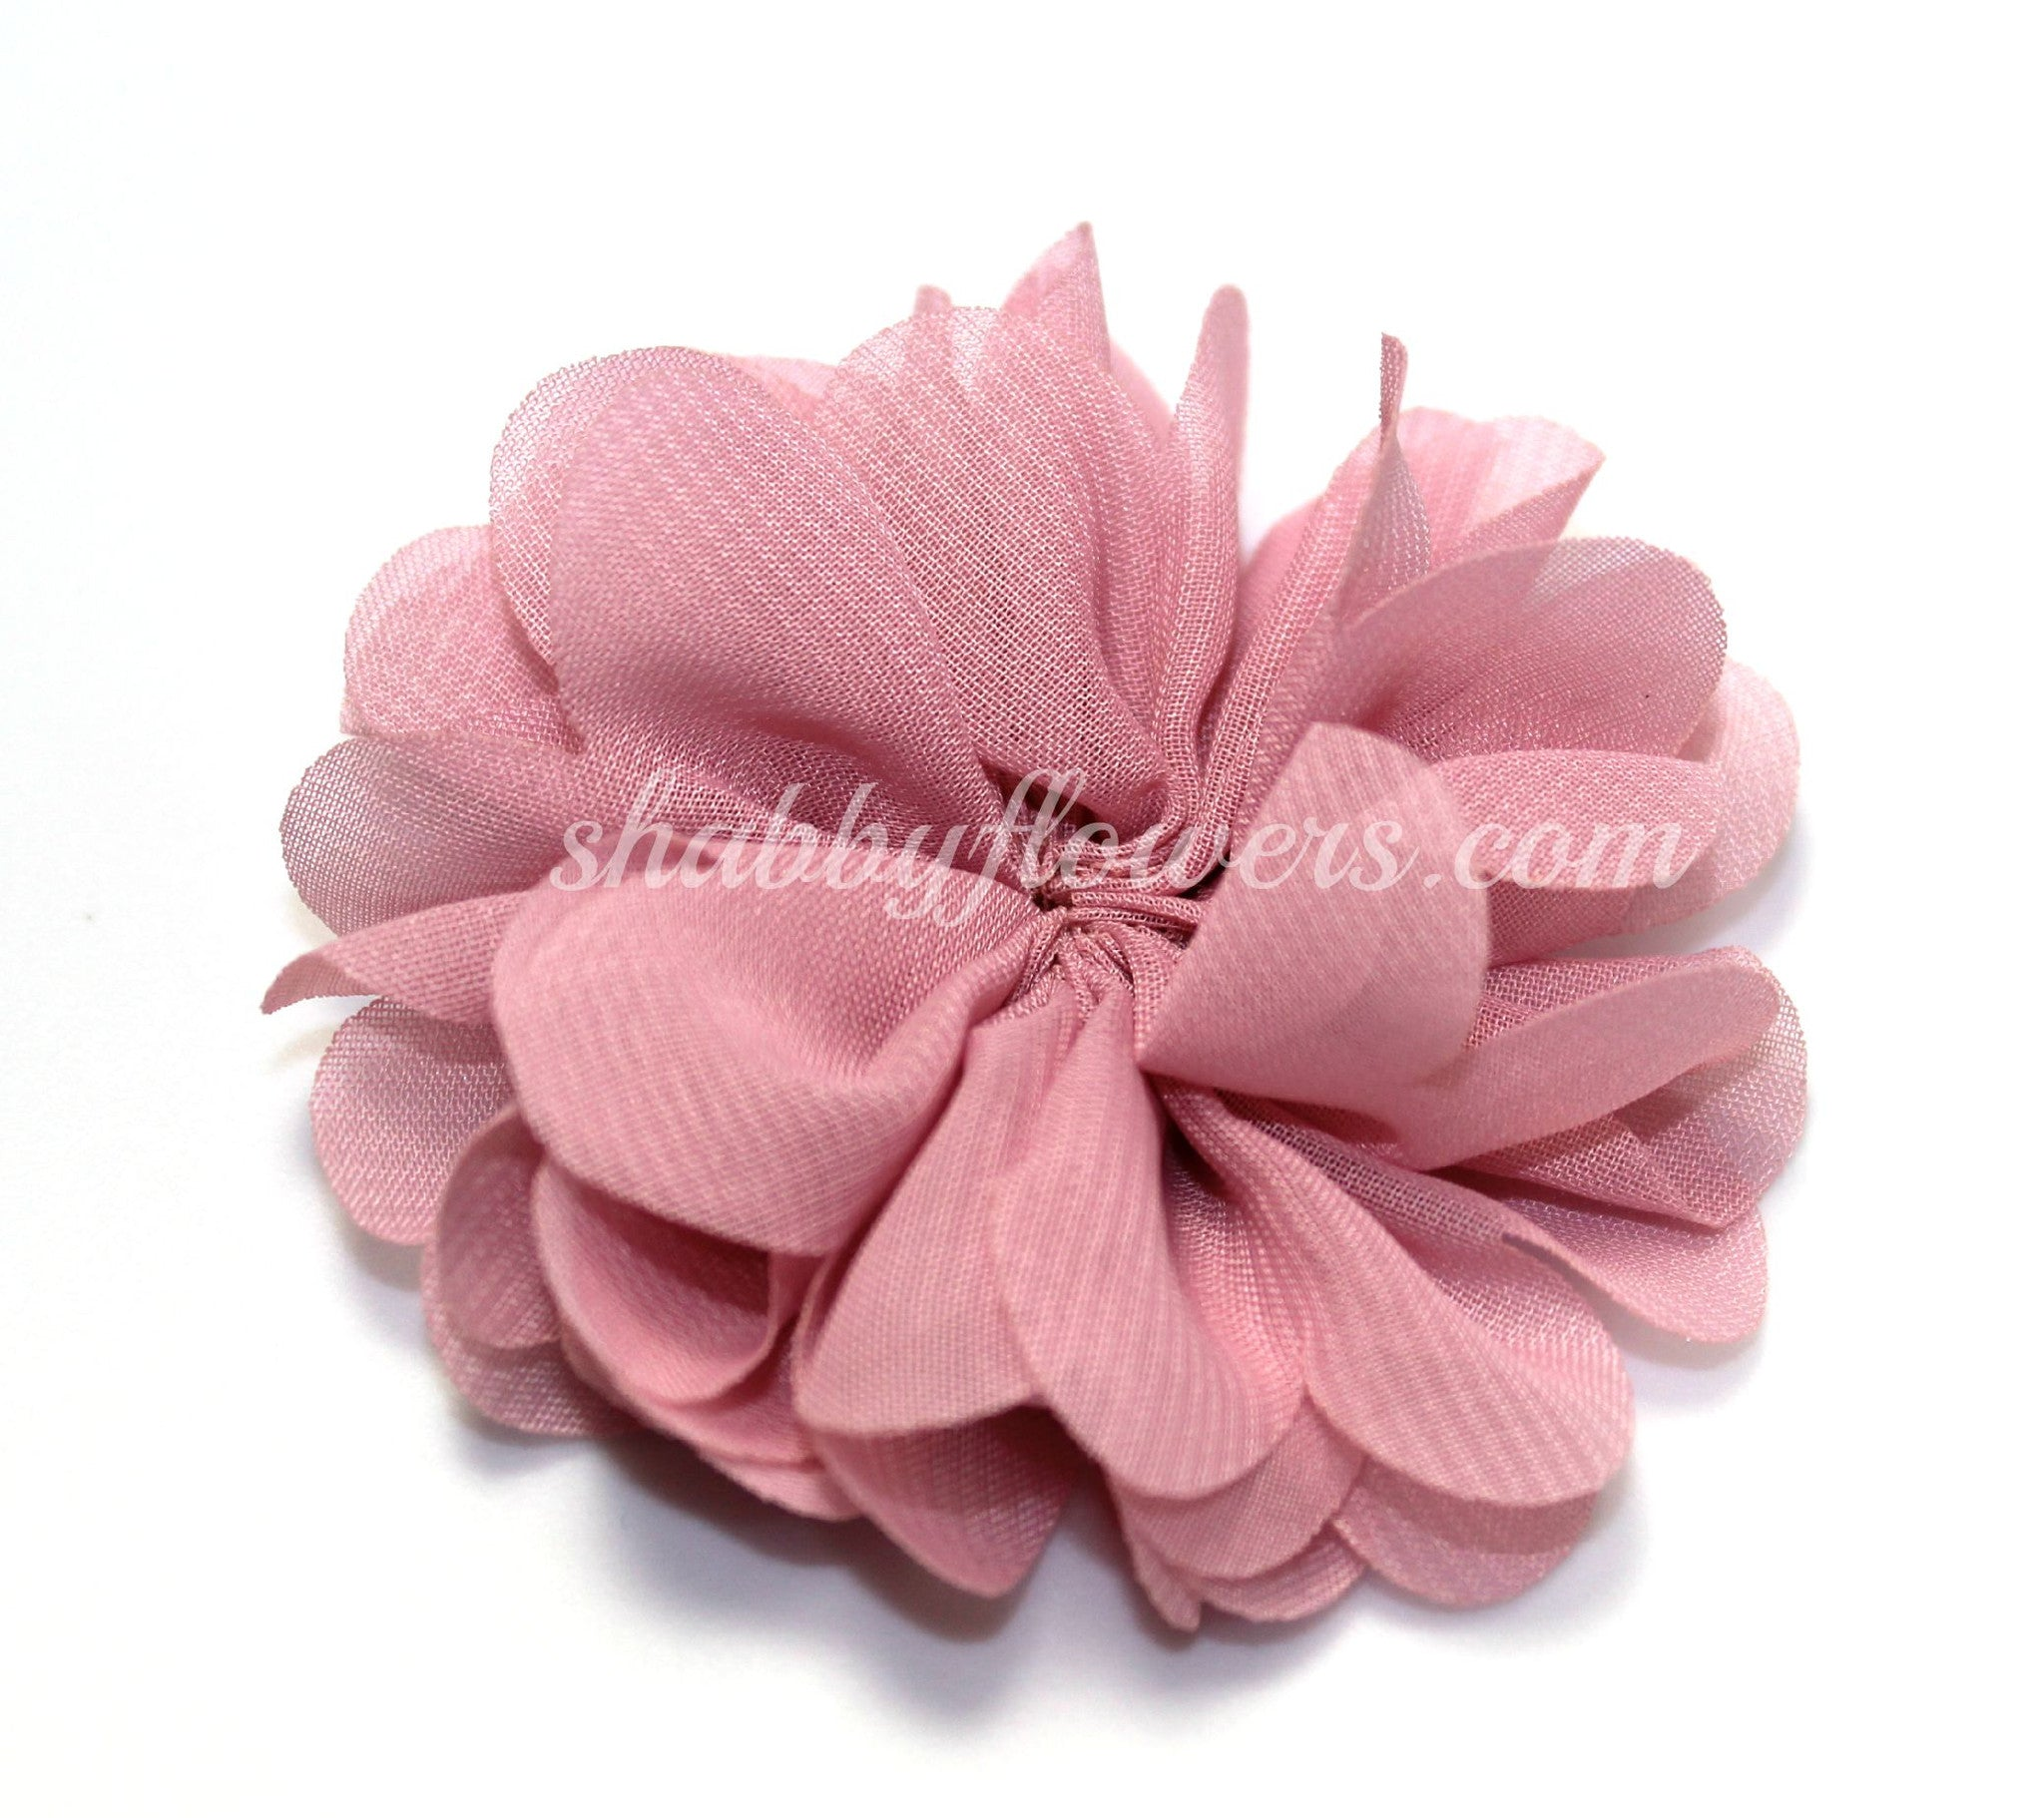 Scalloped Flower - Vintage Pink - shabbyflowers.com